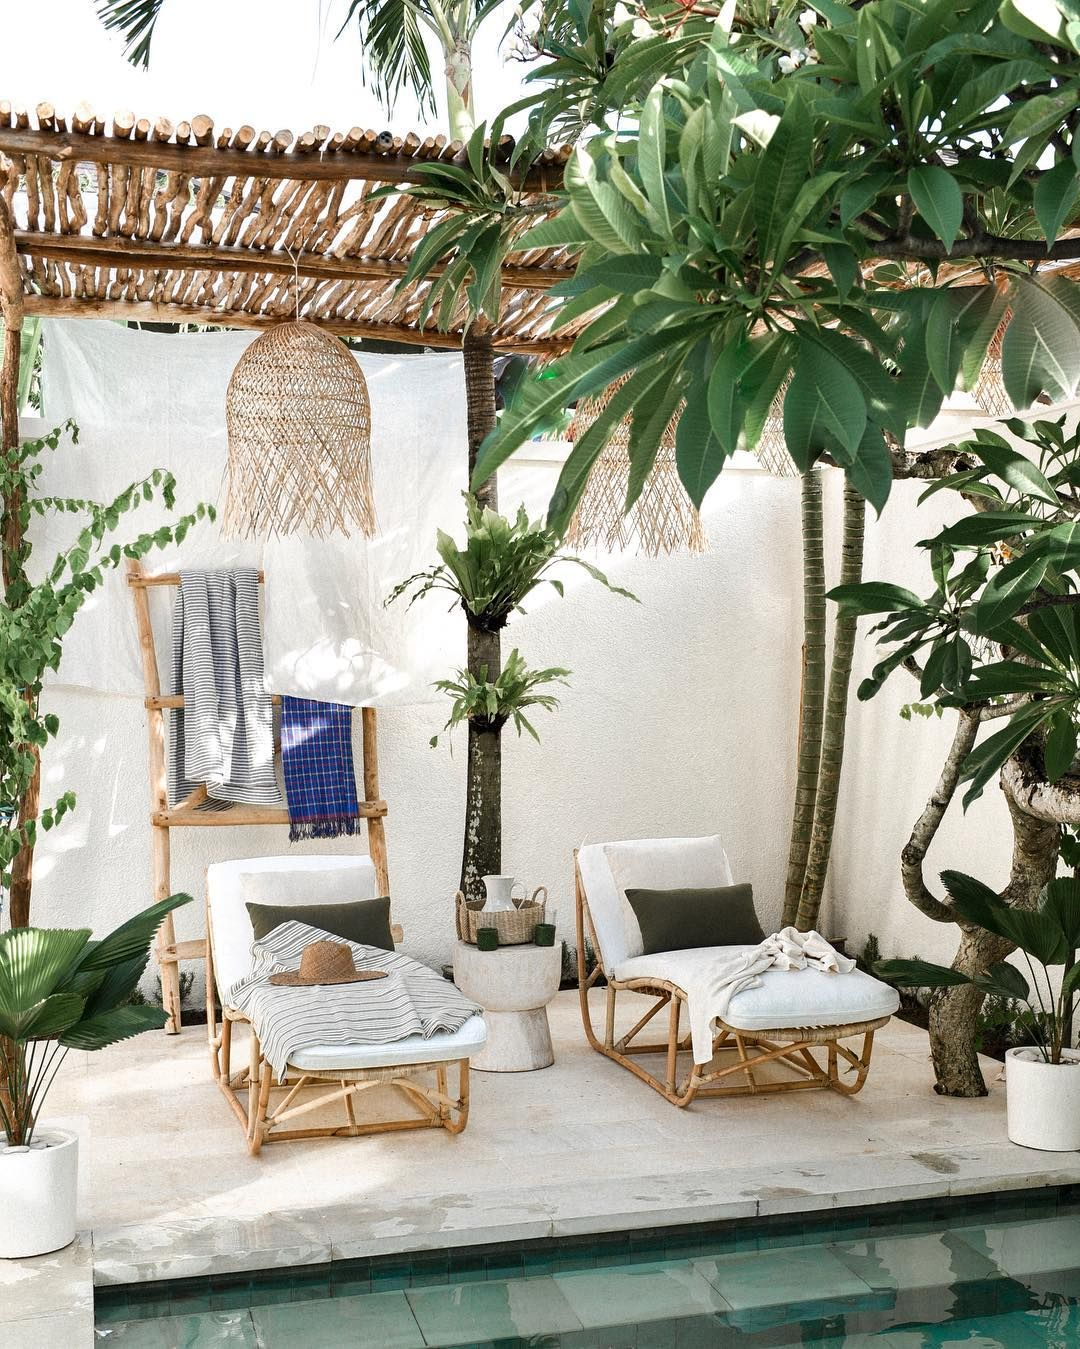 Our Editors Were Dreaming Of Tropical Escapes This Week Including This Dreamy Spot In Bali See More In The Insta F Bali Decor Bali House My Scandinavian Home